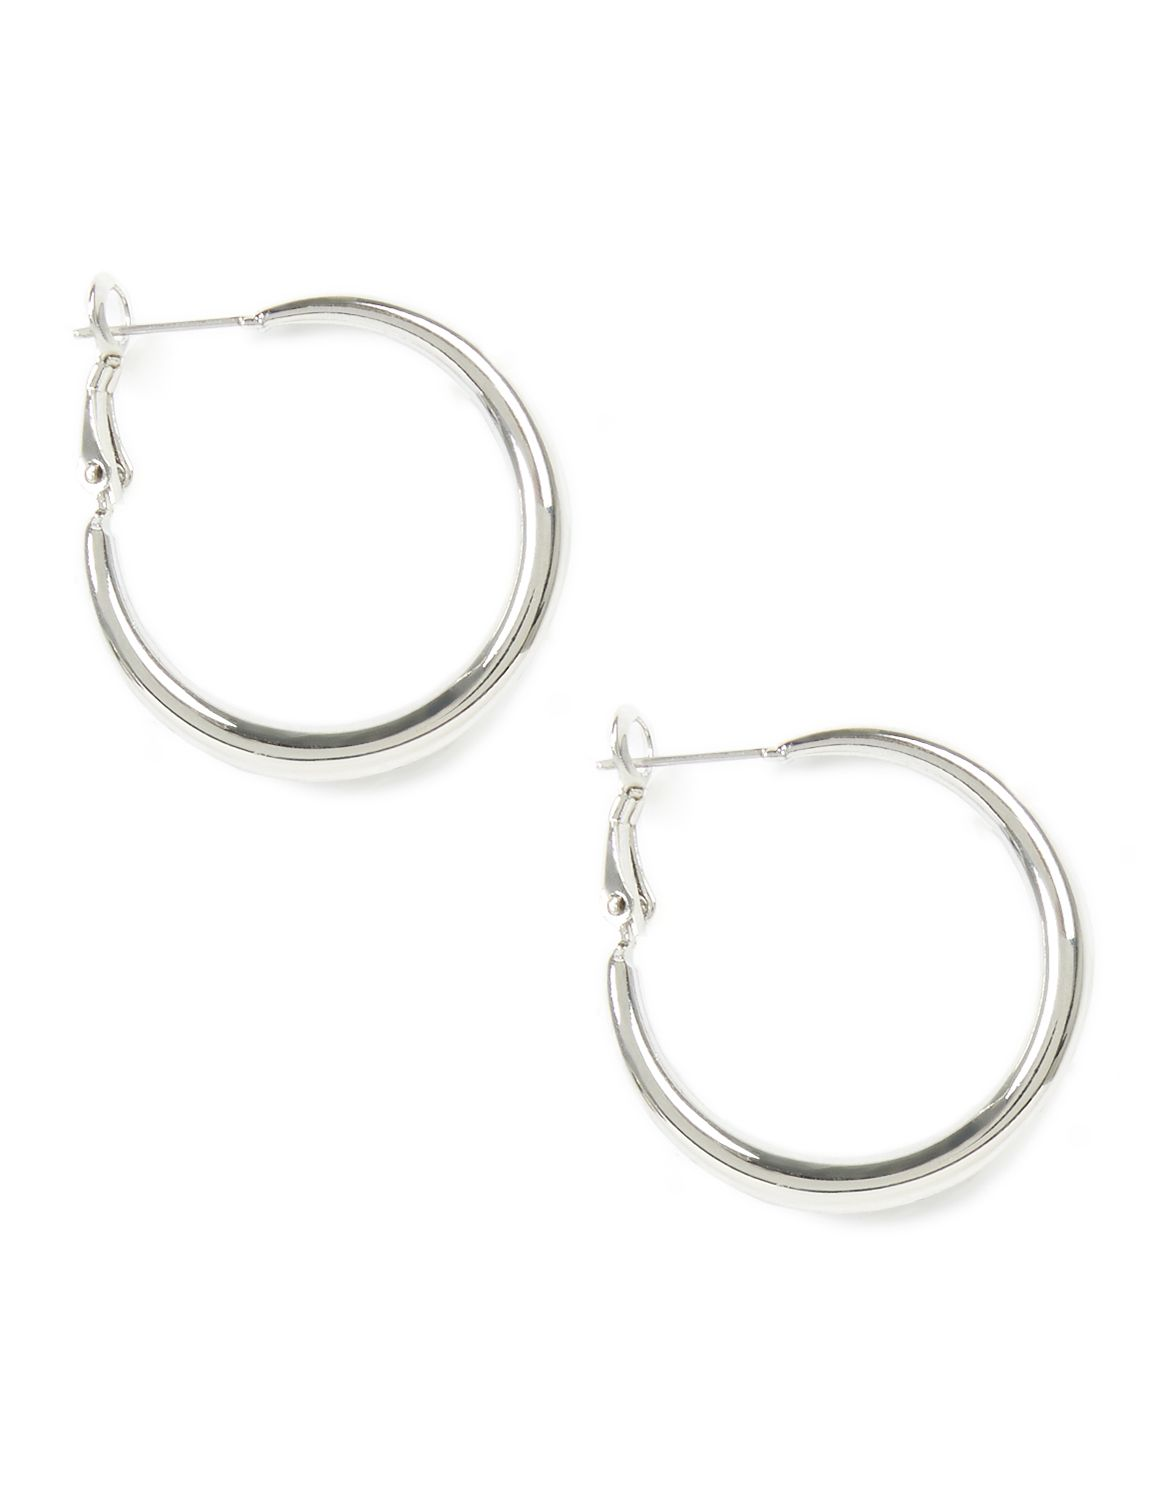 Infinity Hoop Earrings CB Smooth silver hoop PE TD-M3068 MP-300097188